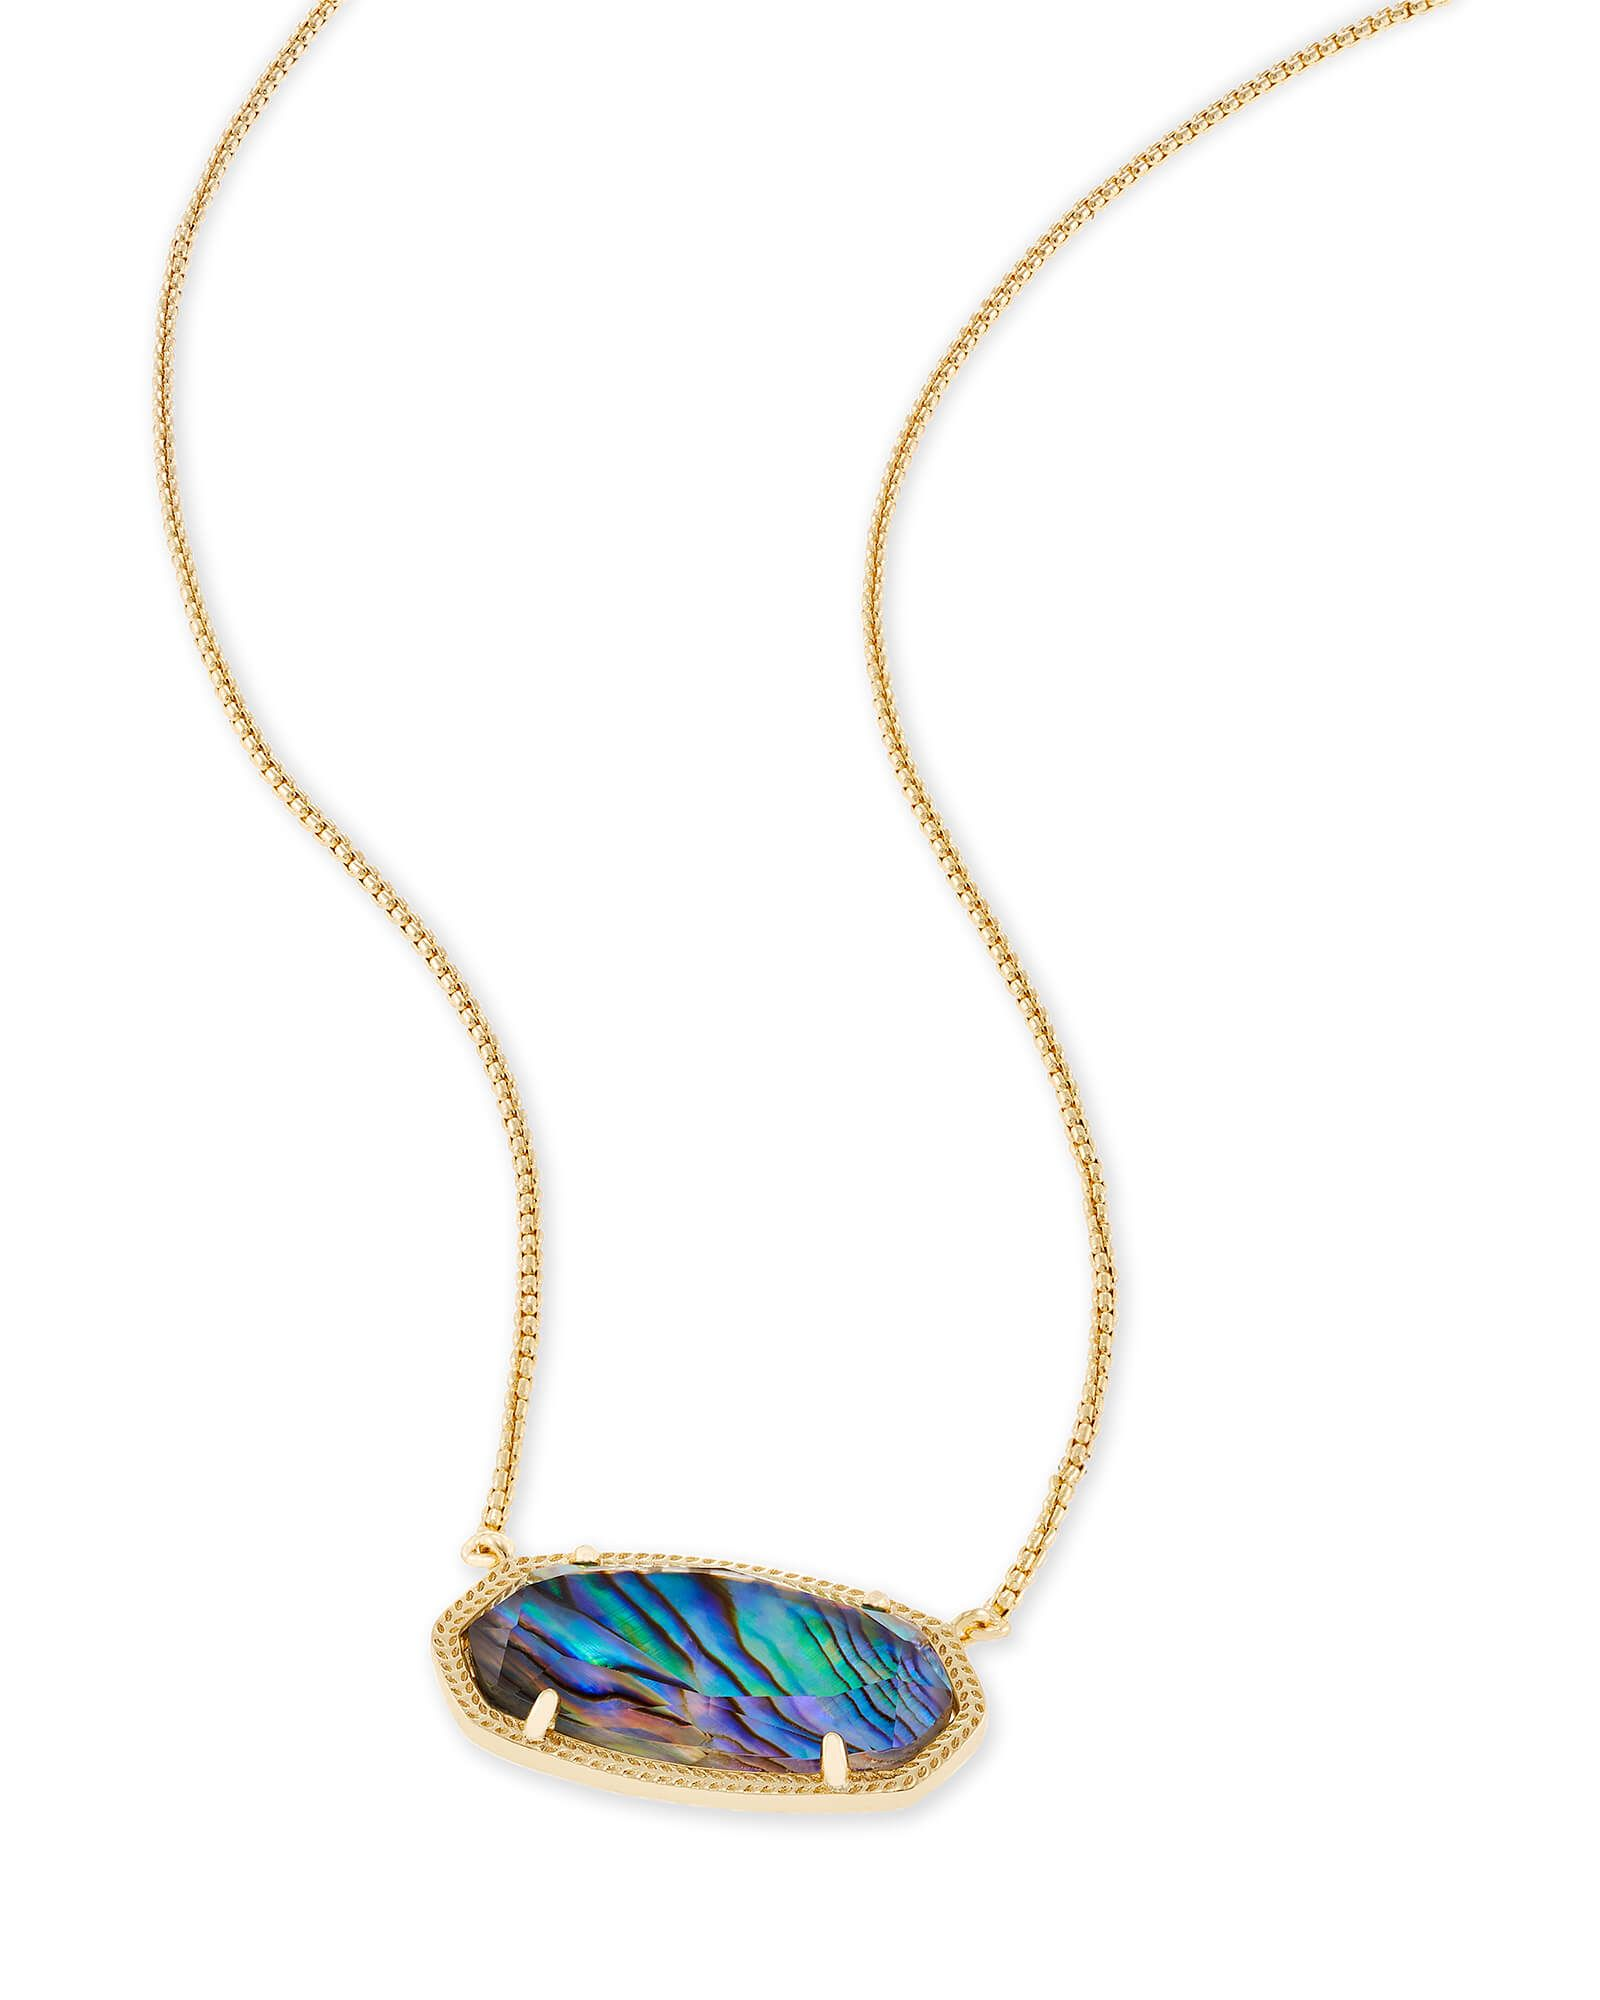 Delaney gold pendant necklace in abalone shell i need a sugar